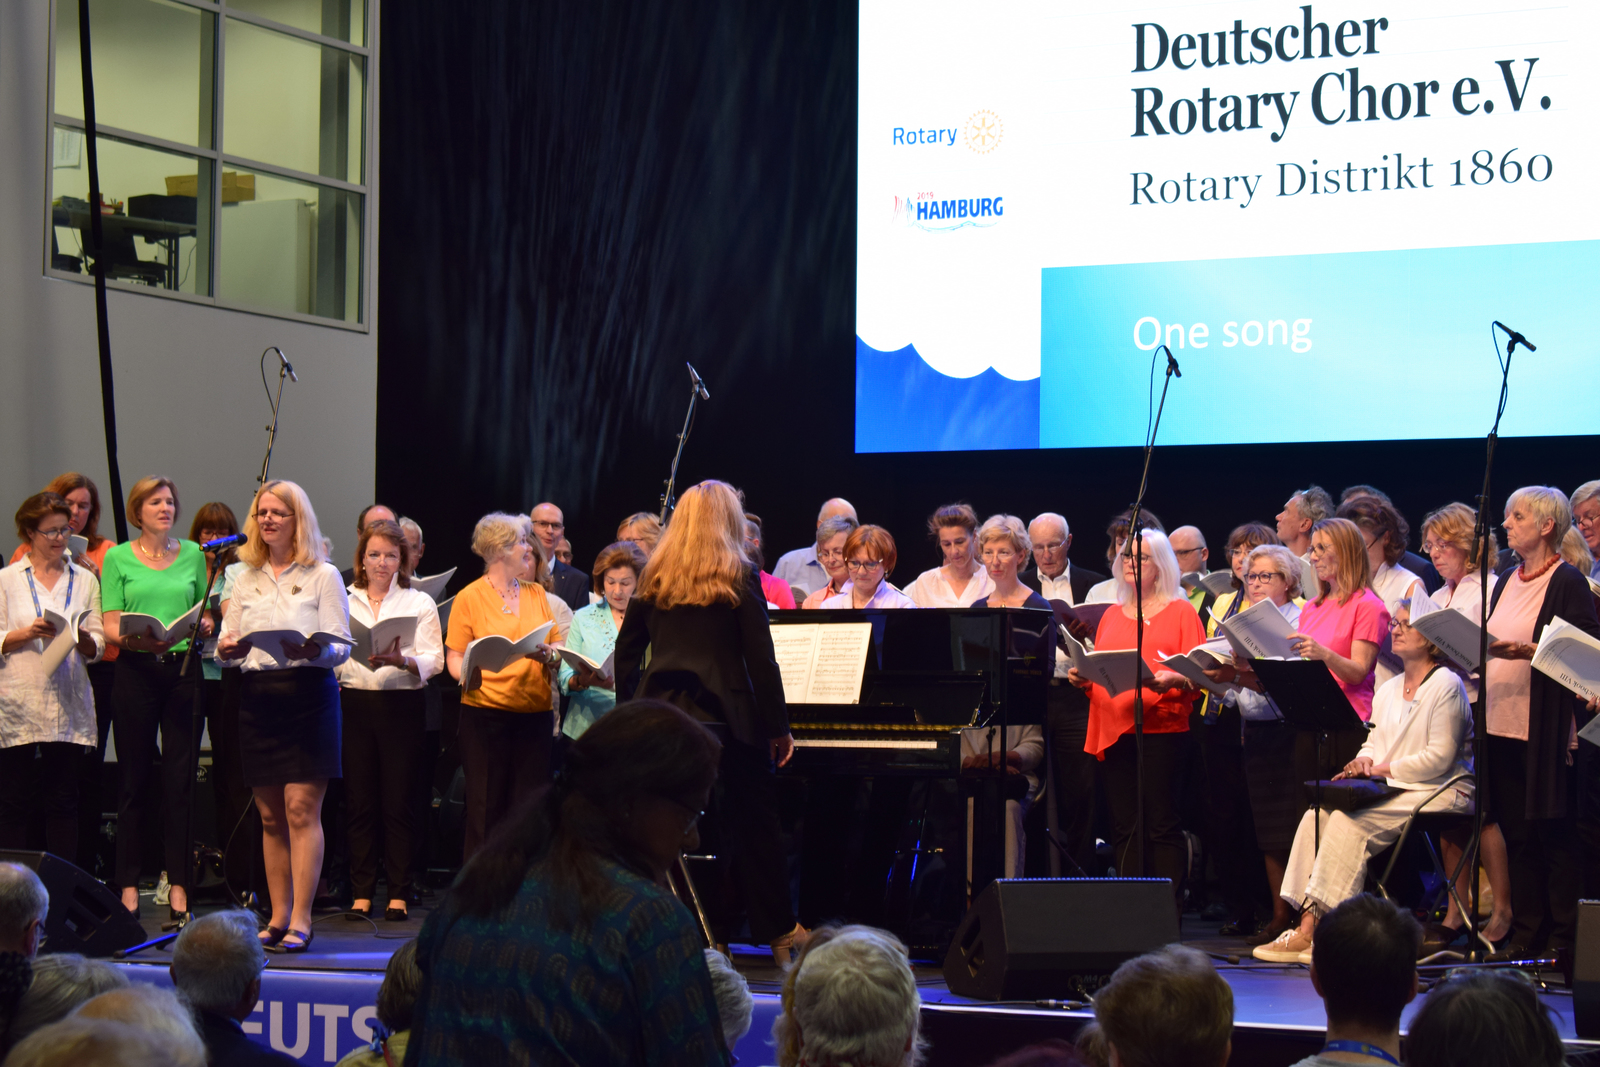 2019, convention, hamburg, rotary chor, house of friendship